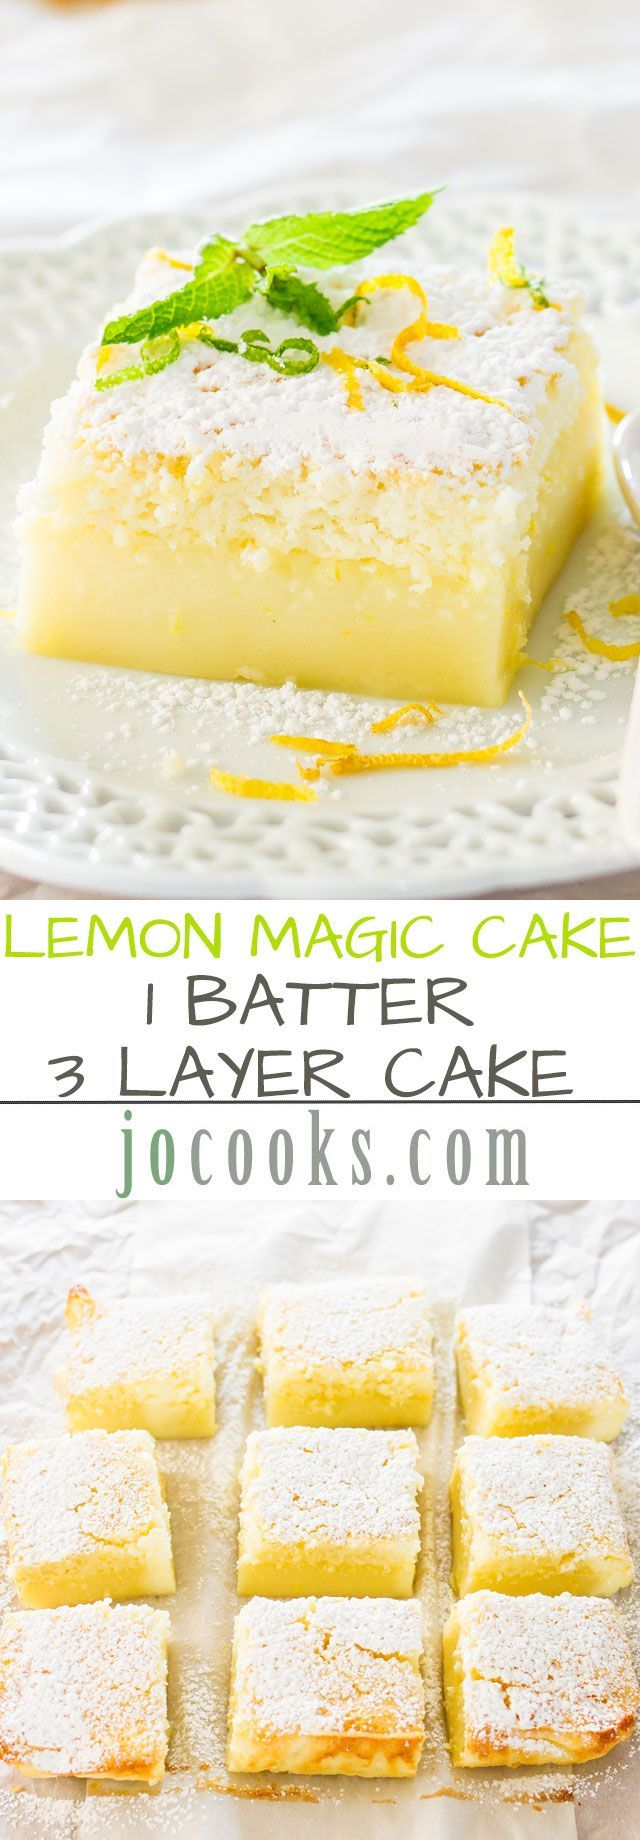 The BEST Easy Lemon Desserts and Treats Recipes – Perfect For Easter, Mother's Day Brunch, Bridal or Baby Showers and Pretty Spring and Summer Holiday Party Refreshments! Sweet Missy